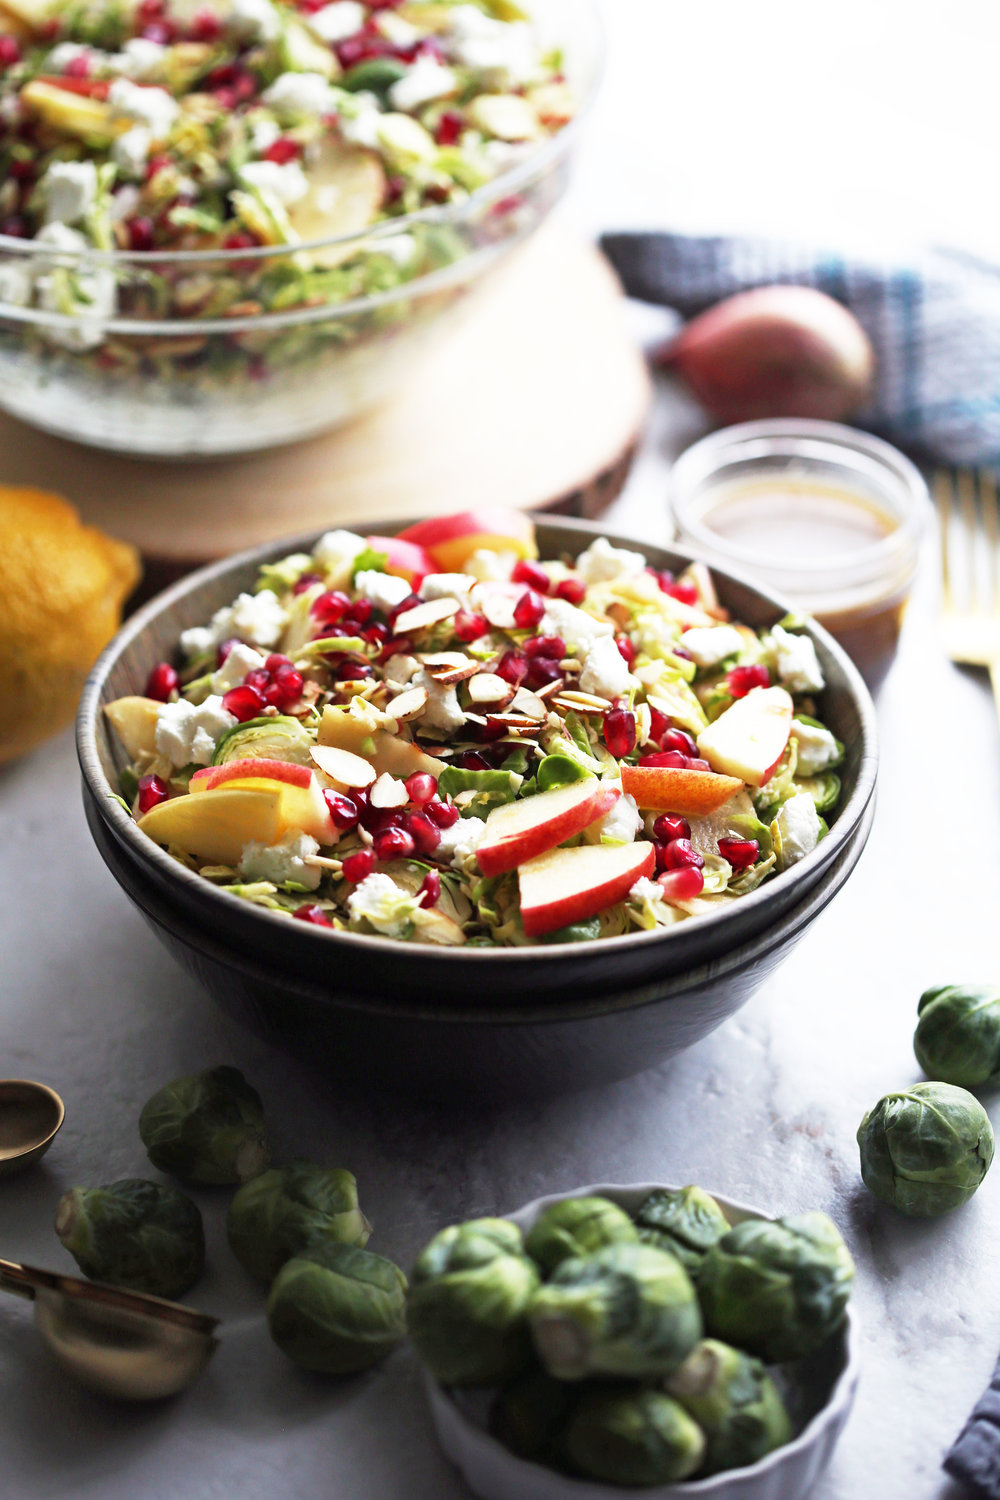 A bowl of shaved Brussels sprouts and pomegranate salad with lemon vinaigrette with more salad in a large glass bowl in the background and raw Brussels sprouts in the foreground.